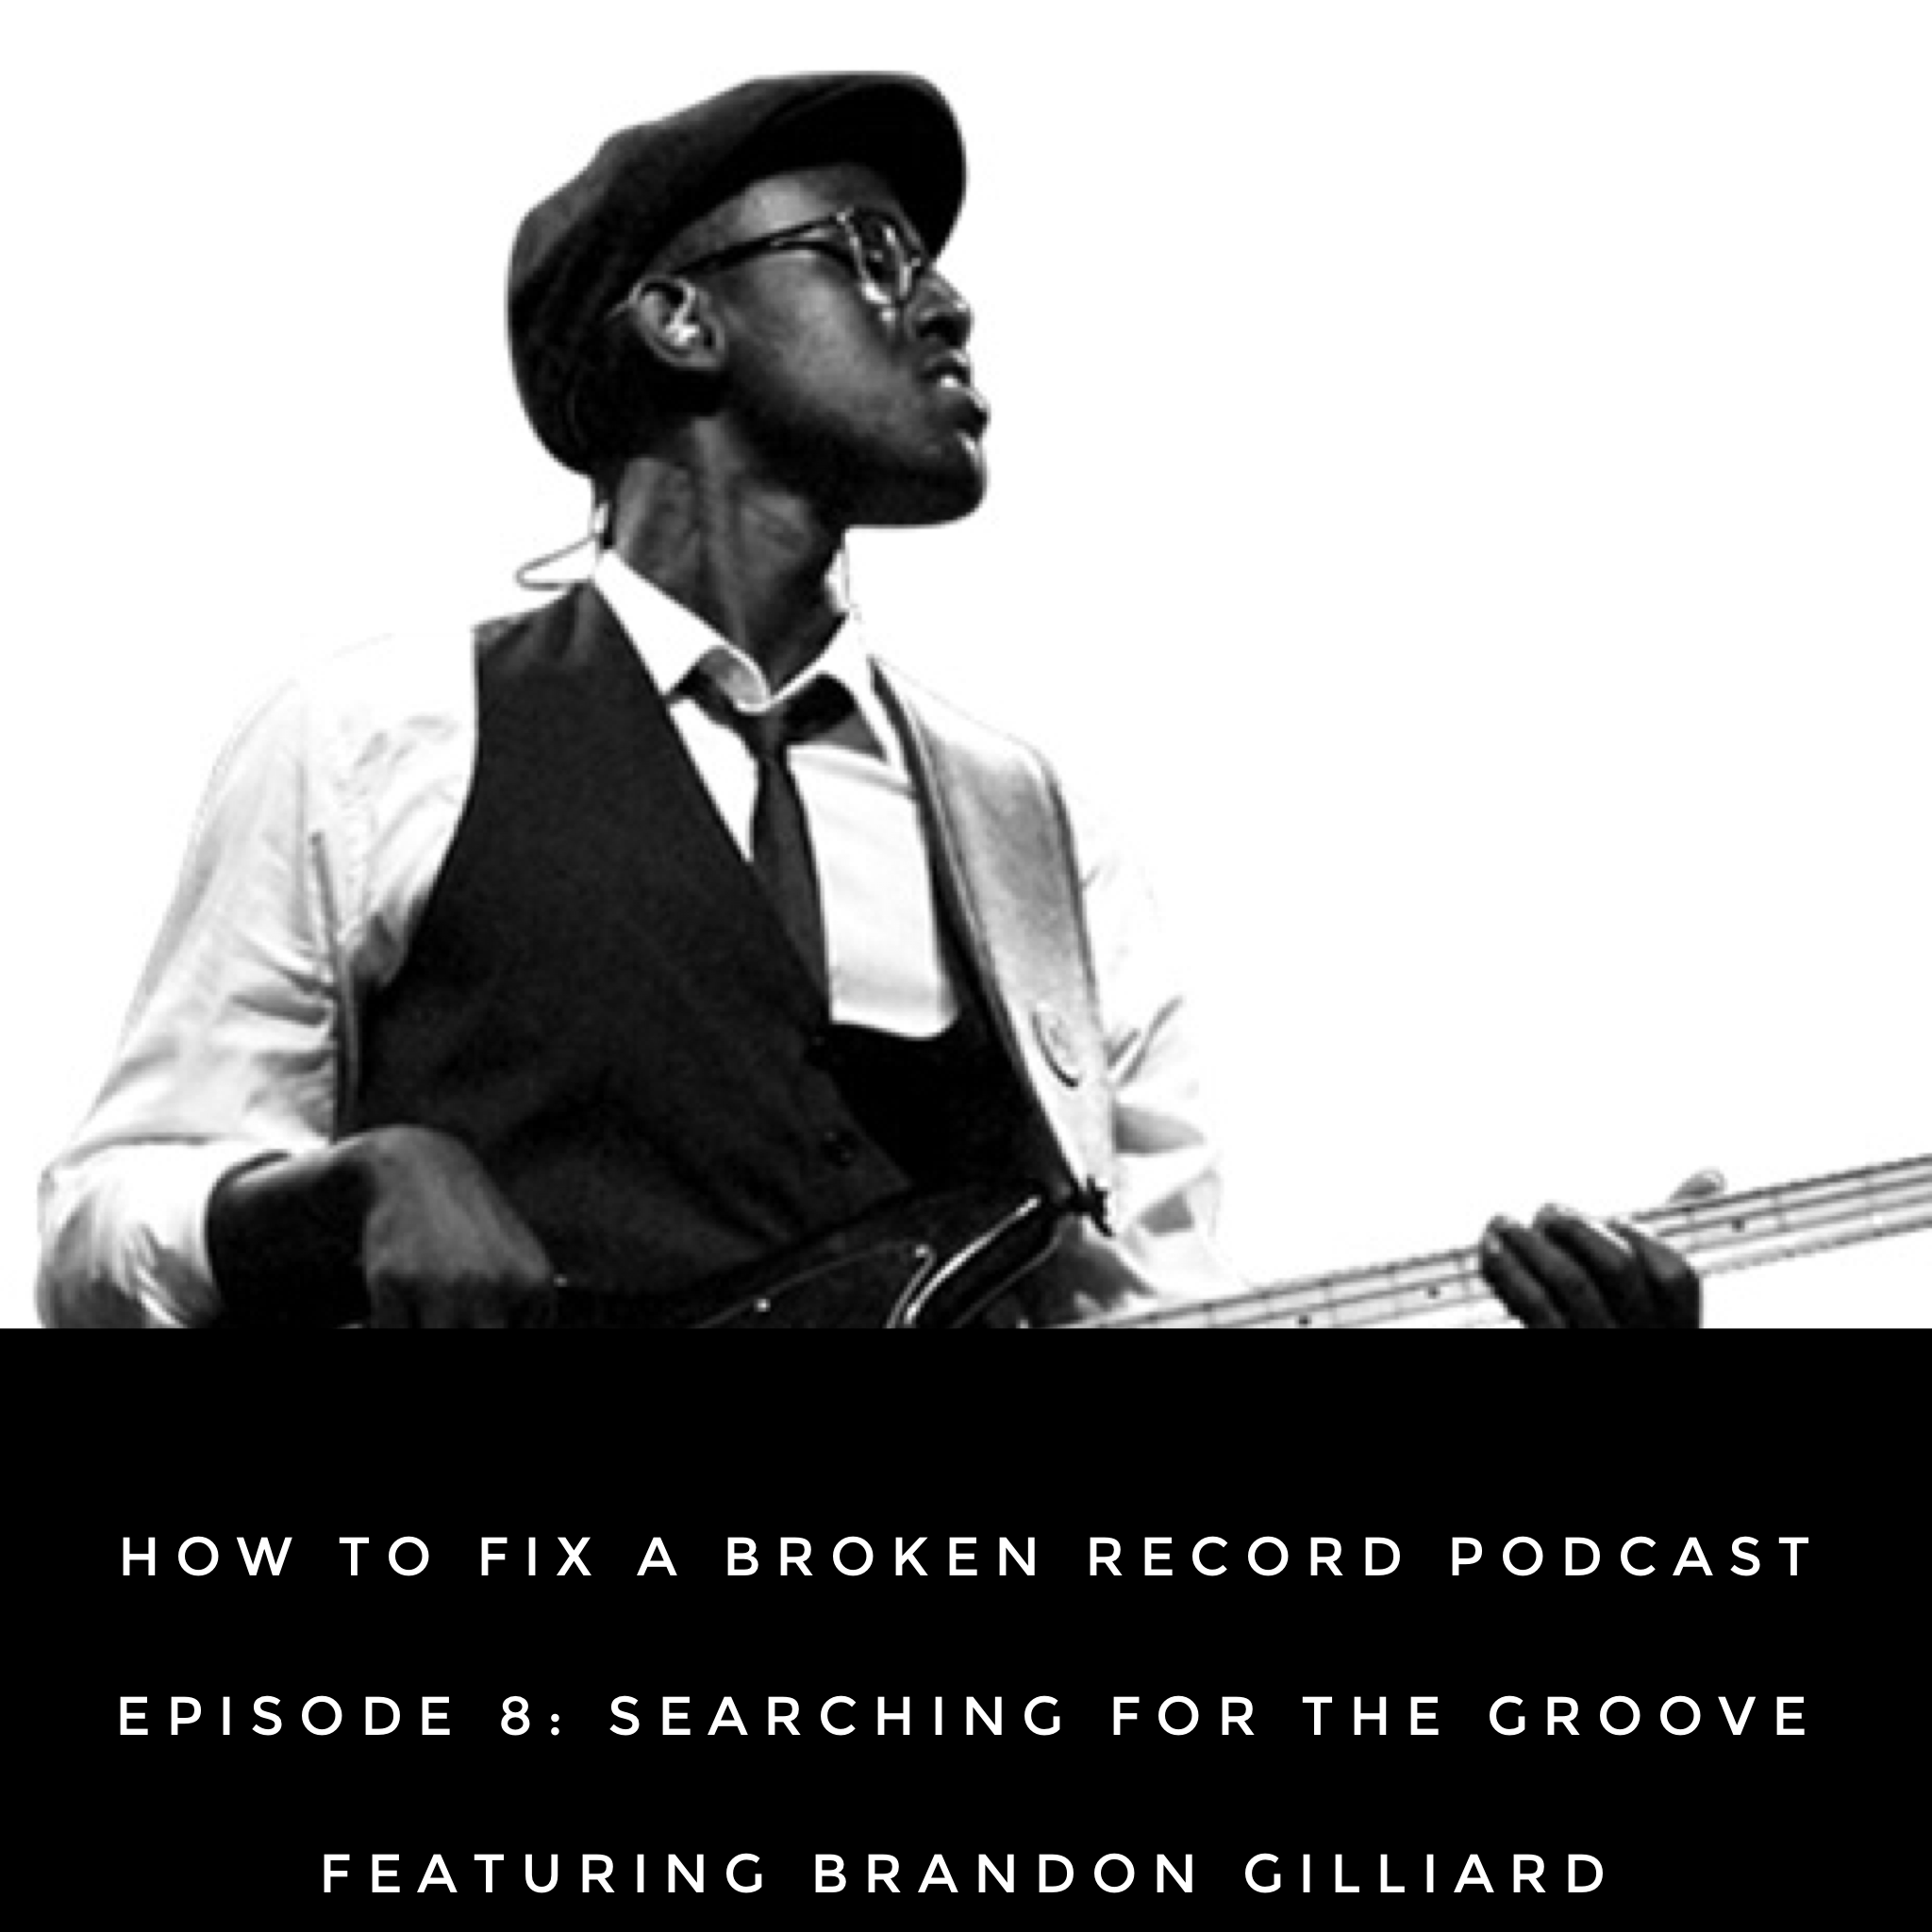 """In Part 7, the final section of the book  How to Fix a Broken Record , Amena writes about the lessons she's learned from vinyl records, Herbie Hancock, and finding her own voice.  In this episode, Amena talks with bass player Brandon Gilliard who has played with artists such as Prince, Janelle Monae, and Lecrae. He shares how he creates and sustains the groove in music and in life.     Show Notes:    Ferdinand  movie   Ferdinand soundtrack    Voodoo  - D'angelo     About Brandon   Brandon Gilliard is a first call session and world touring bass player. He has recorded or shared stages with artists such as LECRAE, Janelle Monae,Big Boi of OutKast, David Crowder, Erykah Badu, Donnie McClurkin, Kirk Franklin, Bebe Winans, PRINCE and a plethora of others. He has also performed with world class ensembles such as the Atlanta Symphony Orchestra, The Chicago Symphony and the San Francisco Symphony Orchestra.Brandon Gilliard has performed on the stages of stadiums, clubs, auditoriums, theaters and arenas around the world from Nashville to Australia. That list includes The Ryman Auditorium aka """"The Original Grand Ole' Opry"""" in Nashville,two headline performances at Coachella Fest (the largest music festival in the United States),two sold out performances at The Sydney Opera House, The Super Bowl Budweiser Pre-Show,The United Center (Prince ft. Janelle Monae)and several performances at The White House.  Today Brandon Gilliard is one of the most sought after and respected bass players in the world. His ability to adapt, attention to tone,professionalism, sightreading ability and vast knowledge of theory allow him to work with artists that cross a wide variety of genres such as country, hip hop, rock, jazz, bluegrass, R&B, gospel, classical, funk and pop. Brandon Gilliard's approach to music is simple, yet unique.Play every note as if it's your only chance, make it groove and remember that the artist comes first when working as a sideman.  For more information on Brandon Gilliard"""